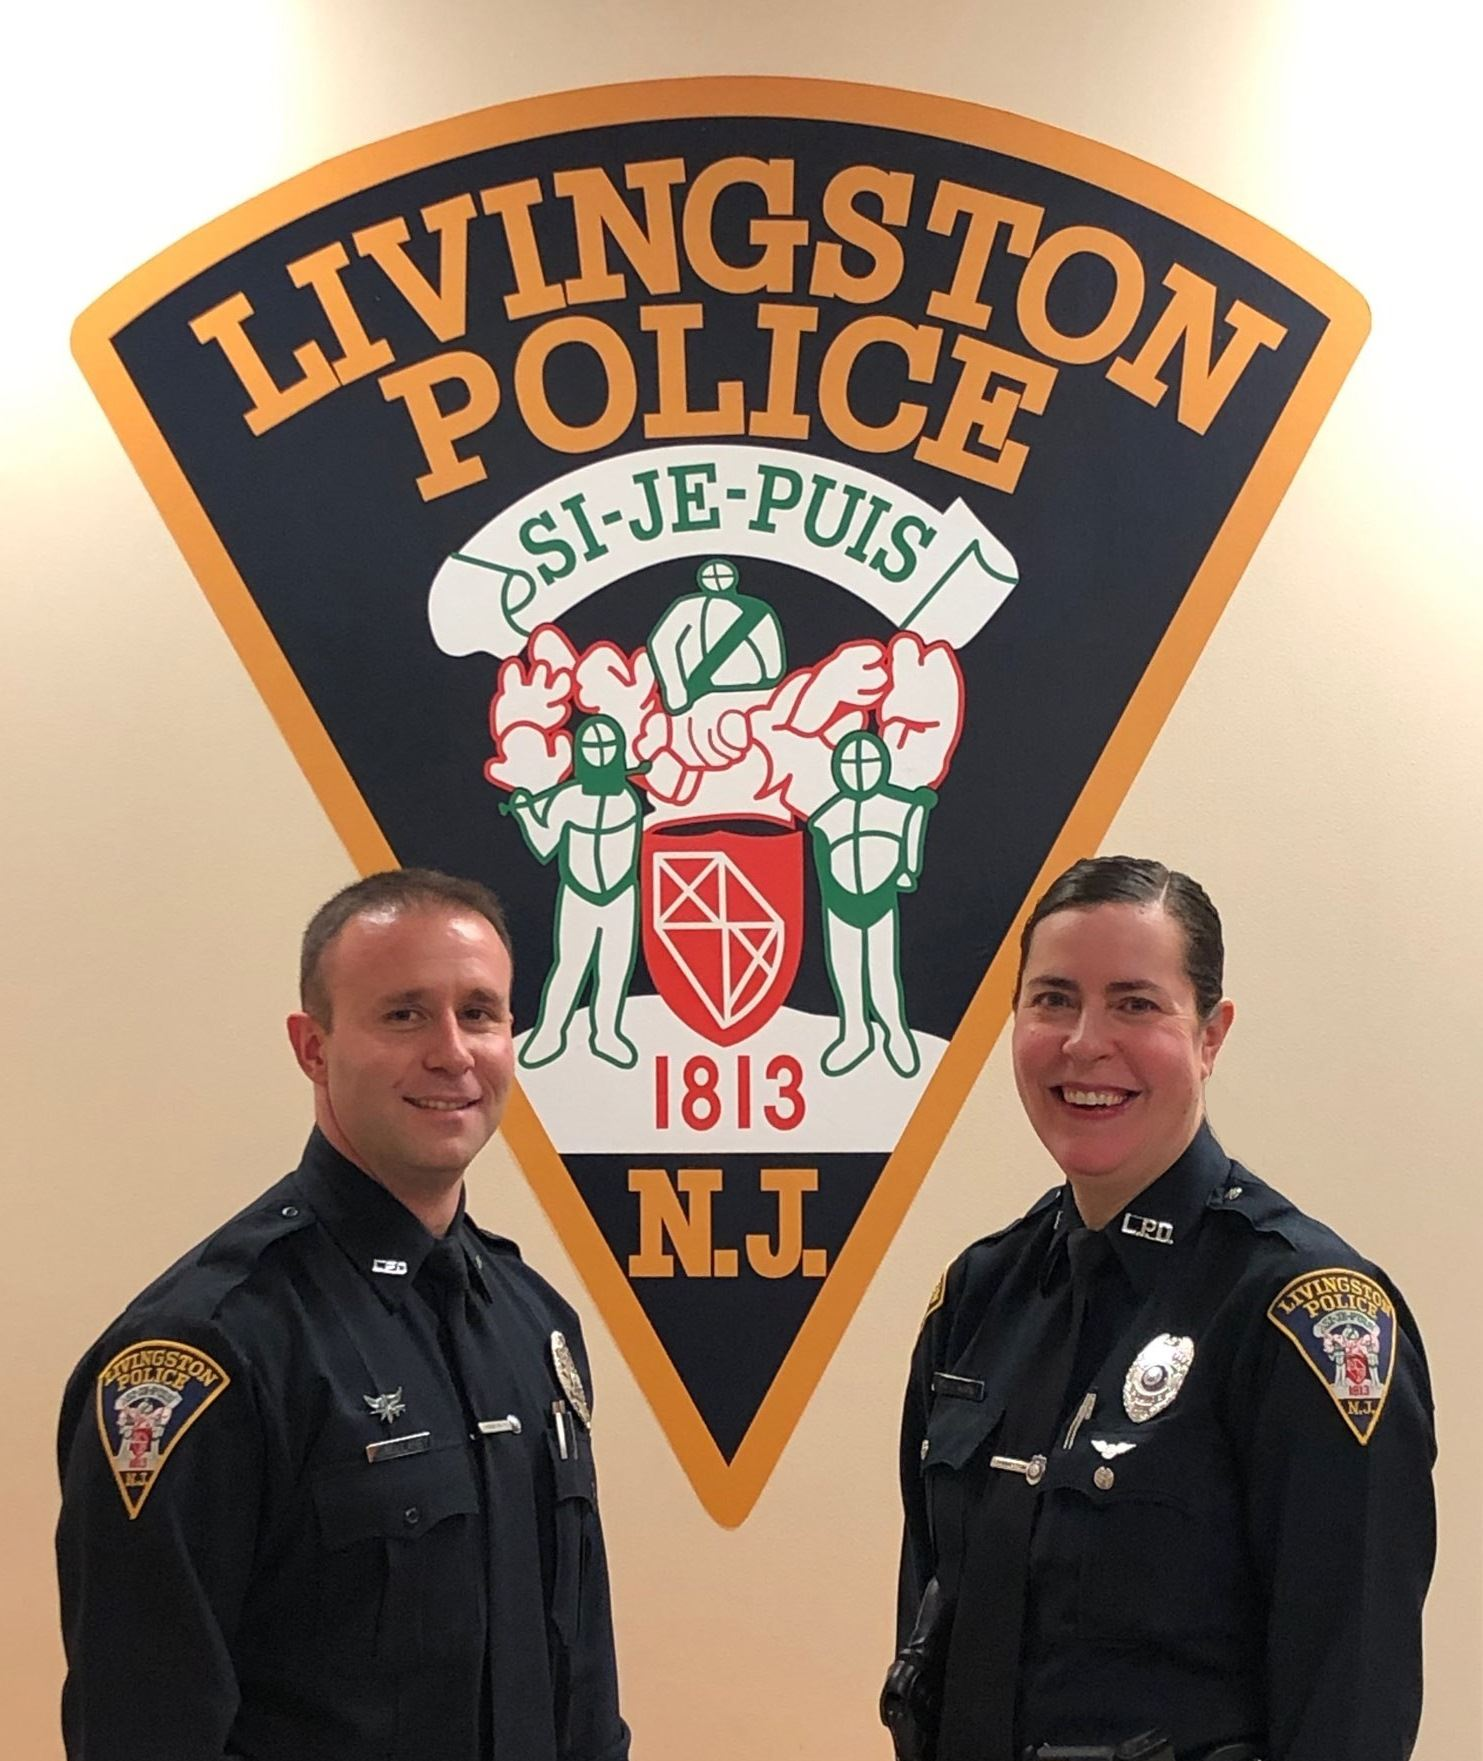 Two police officers smiling